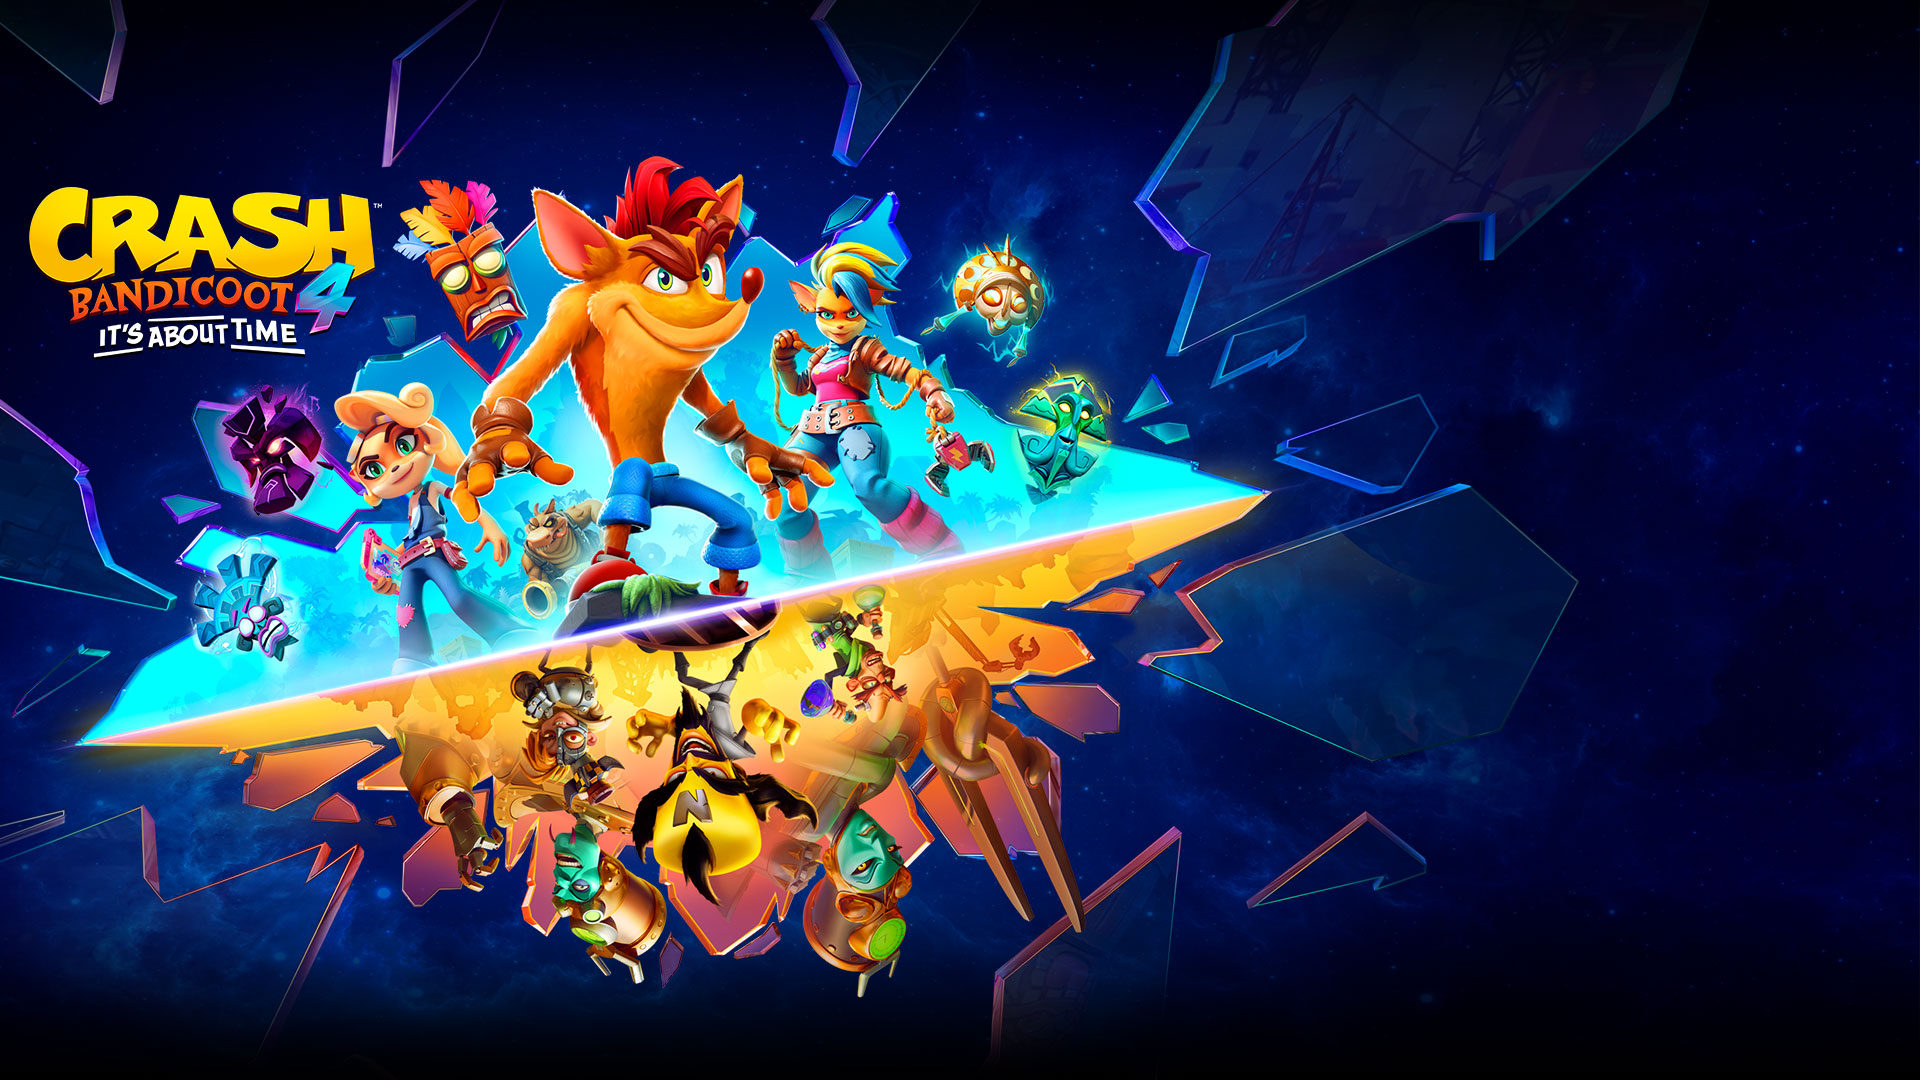 Crash Bandicoot 4, It's About Time, Crash, Coco and other characters break through glass, underneath them is Doctor Neo Cortex and his minions.